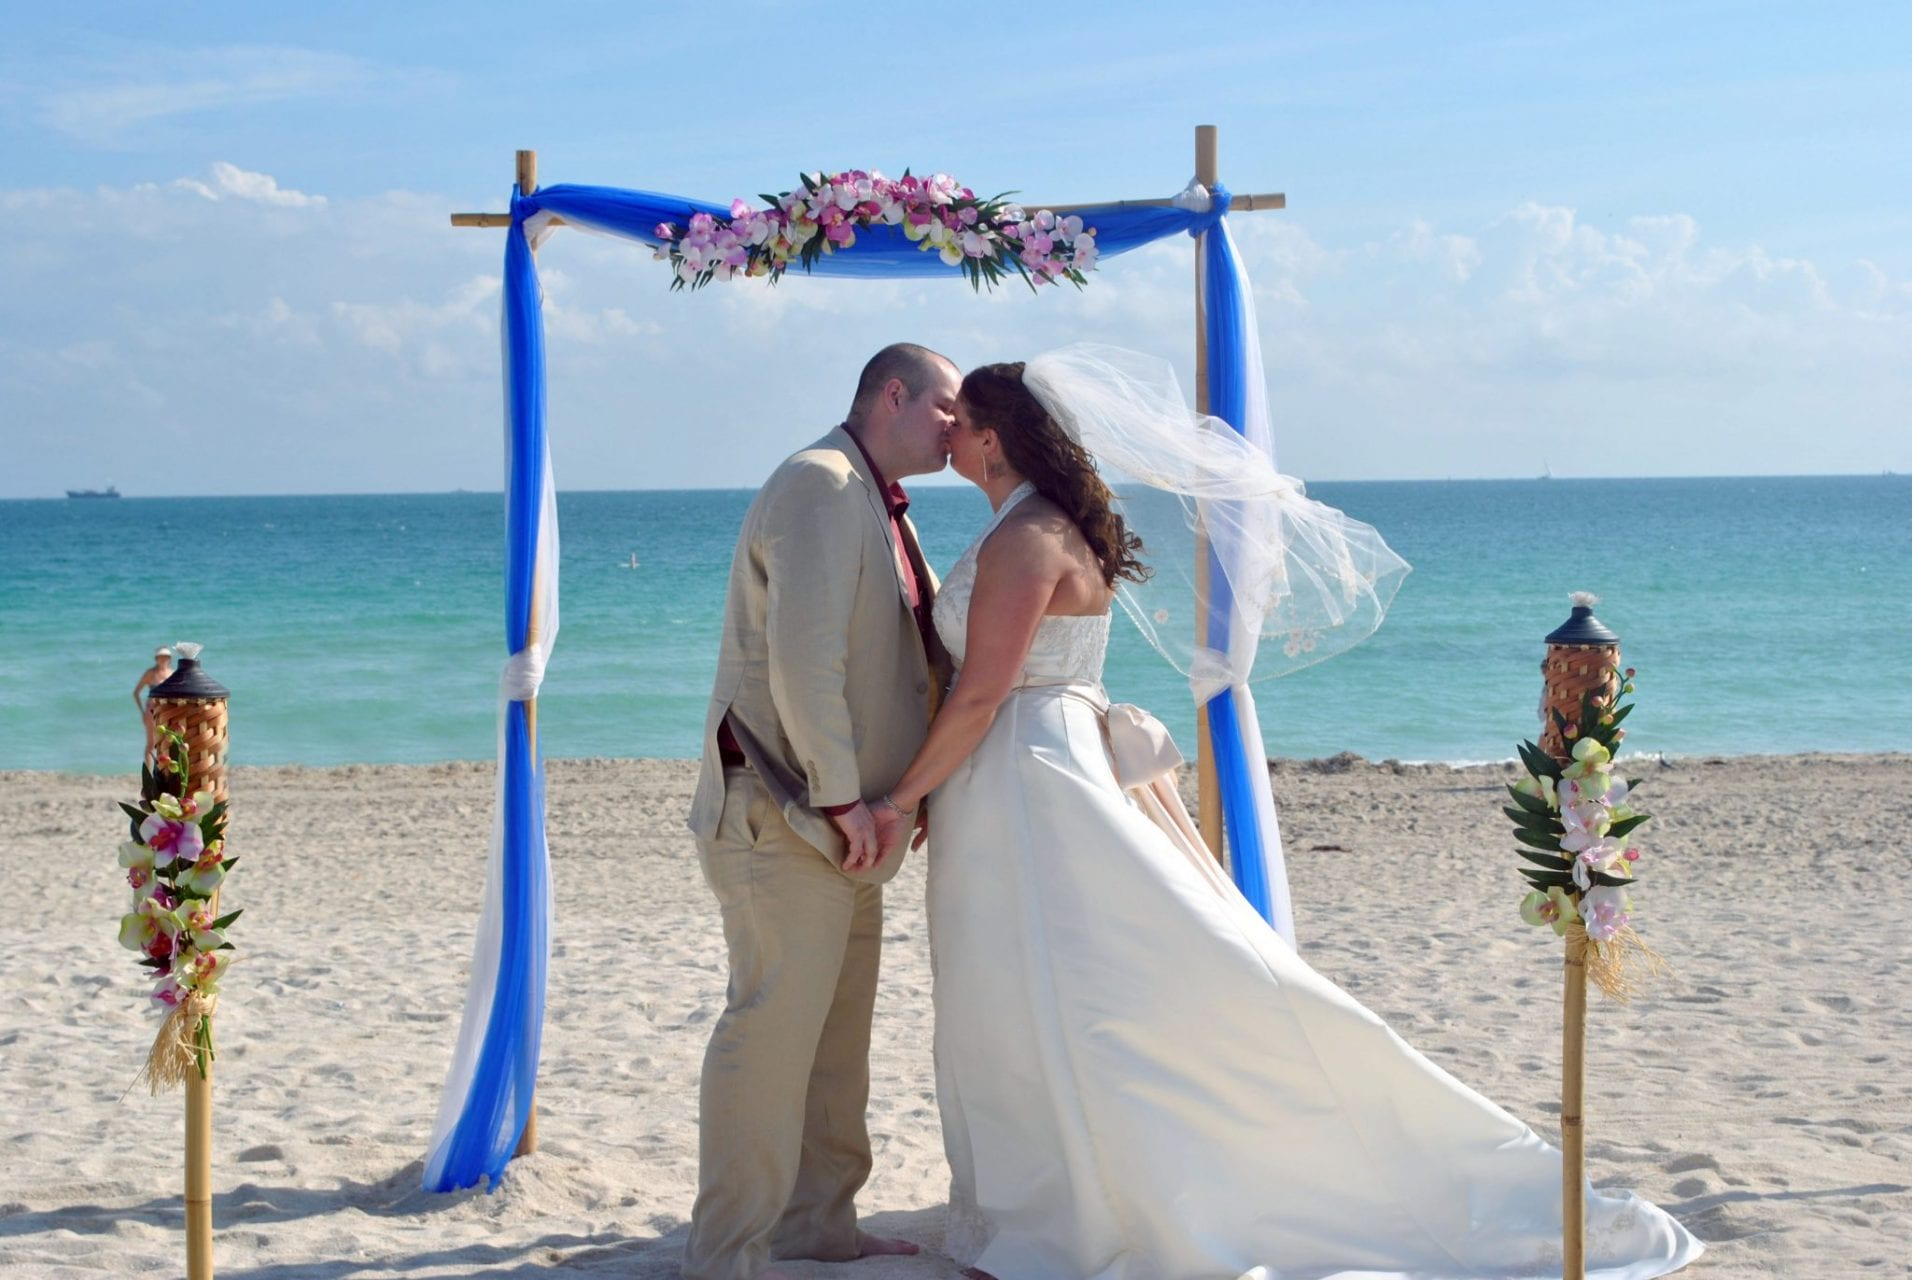 Couple kissing after Miami Beach wedding under arch on beach